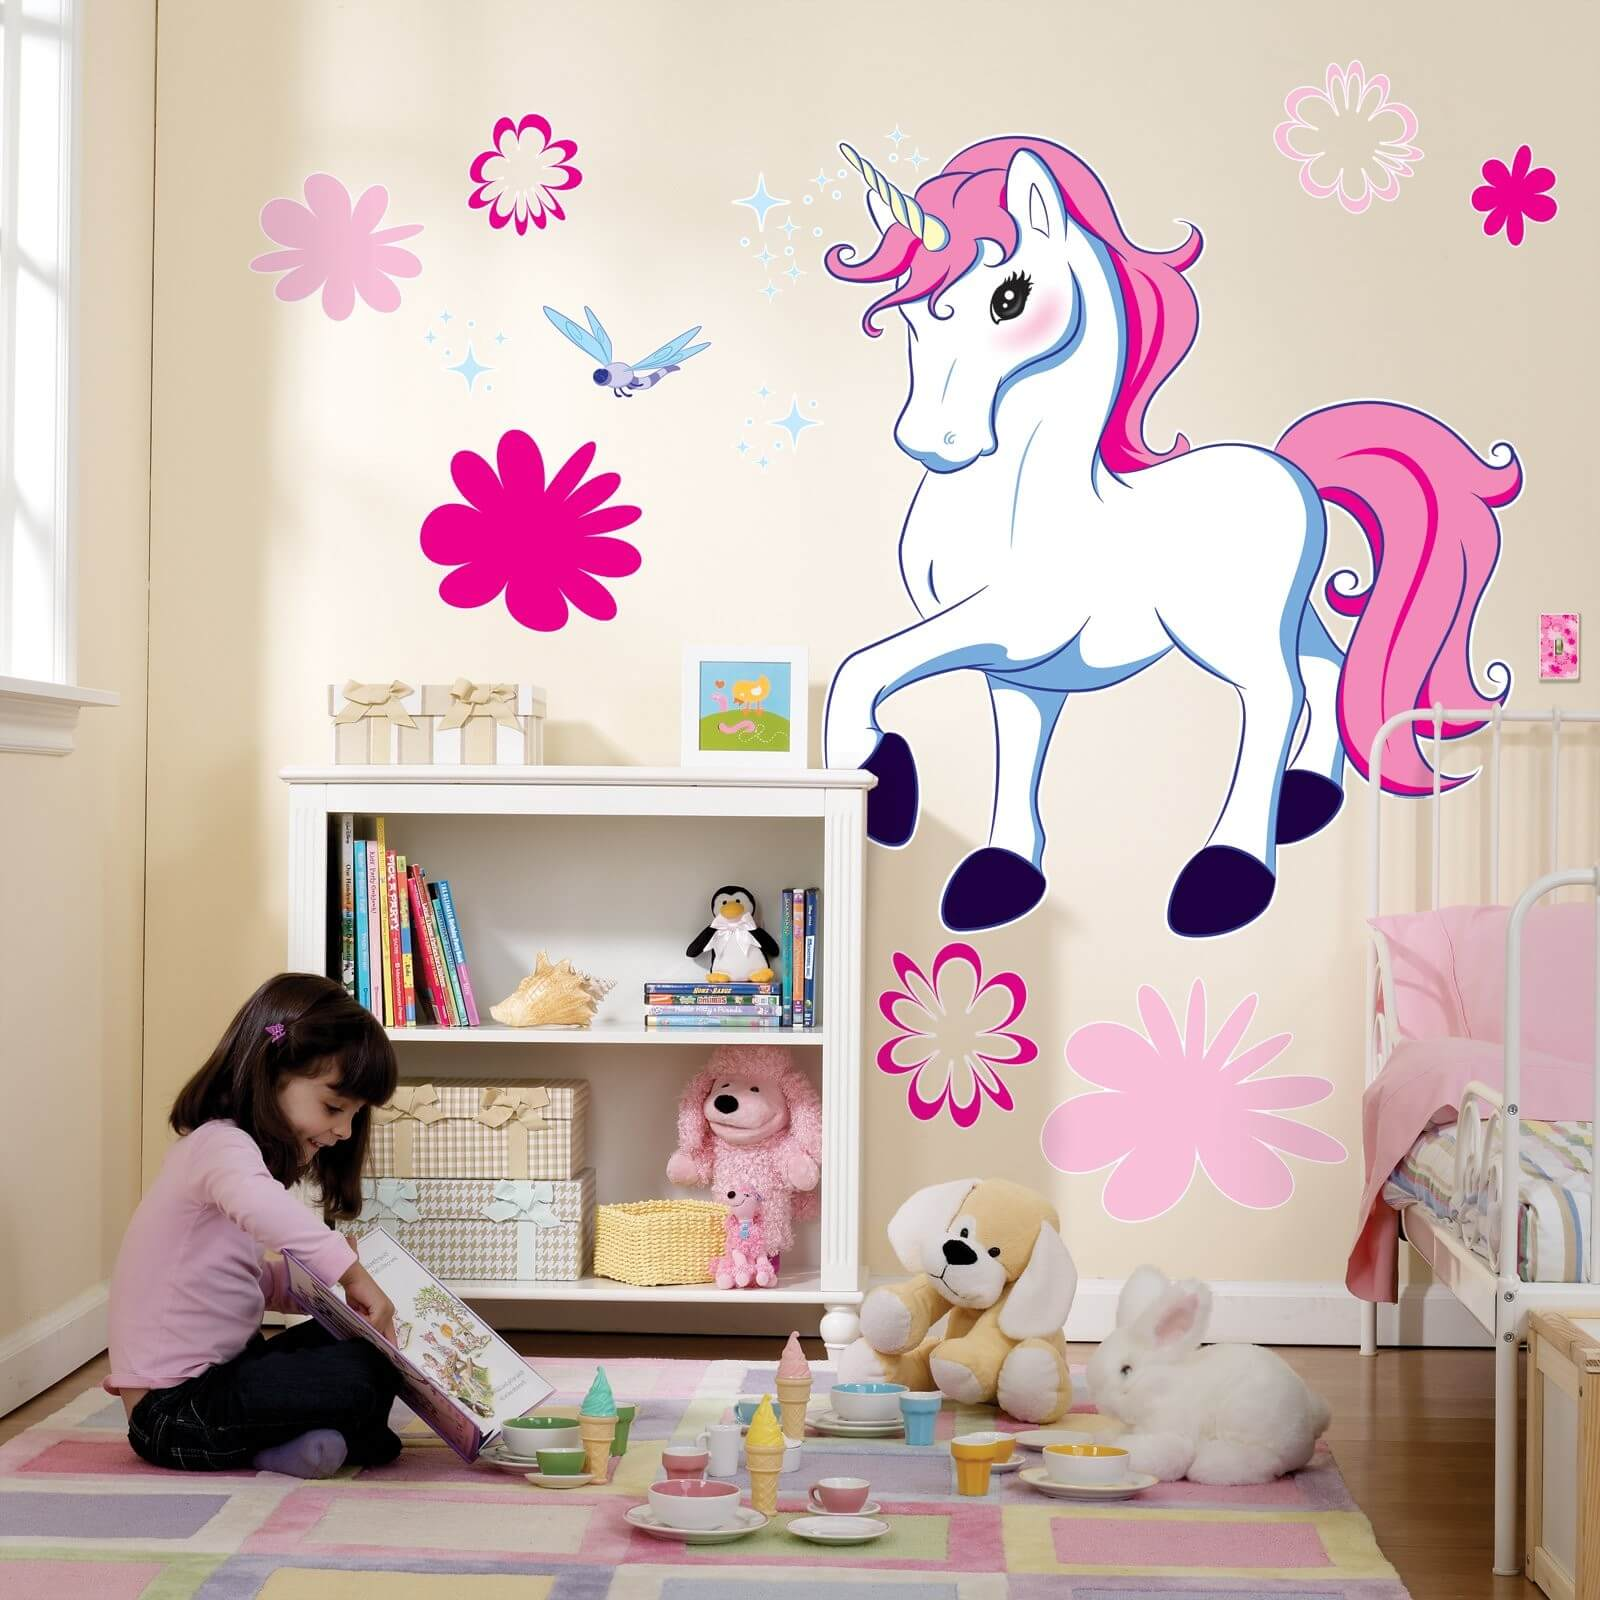 Children S Birthday Party Food Spread Berkshire England: 9 Unicorn Inspired Bedroom For GIrls